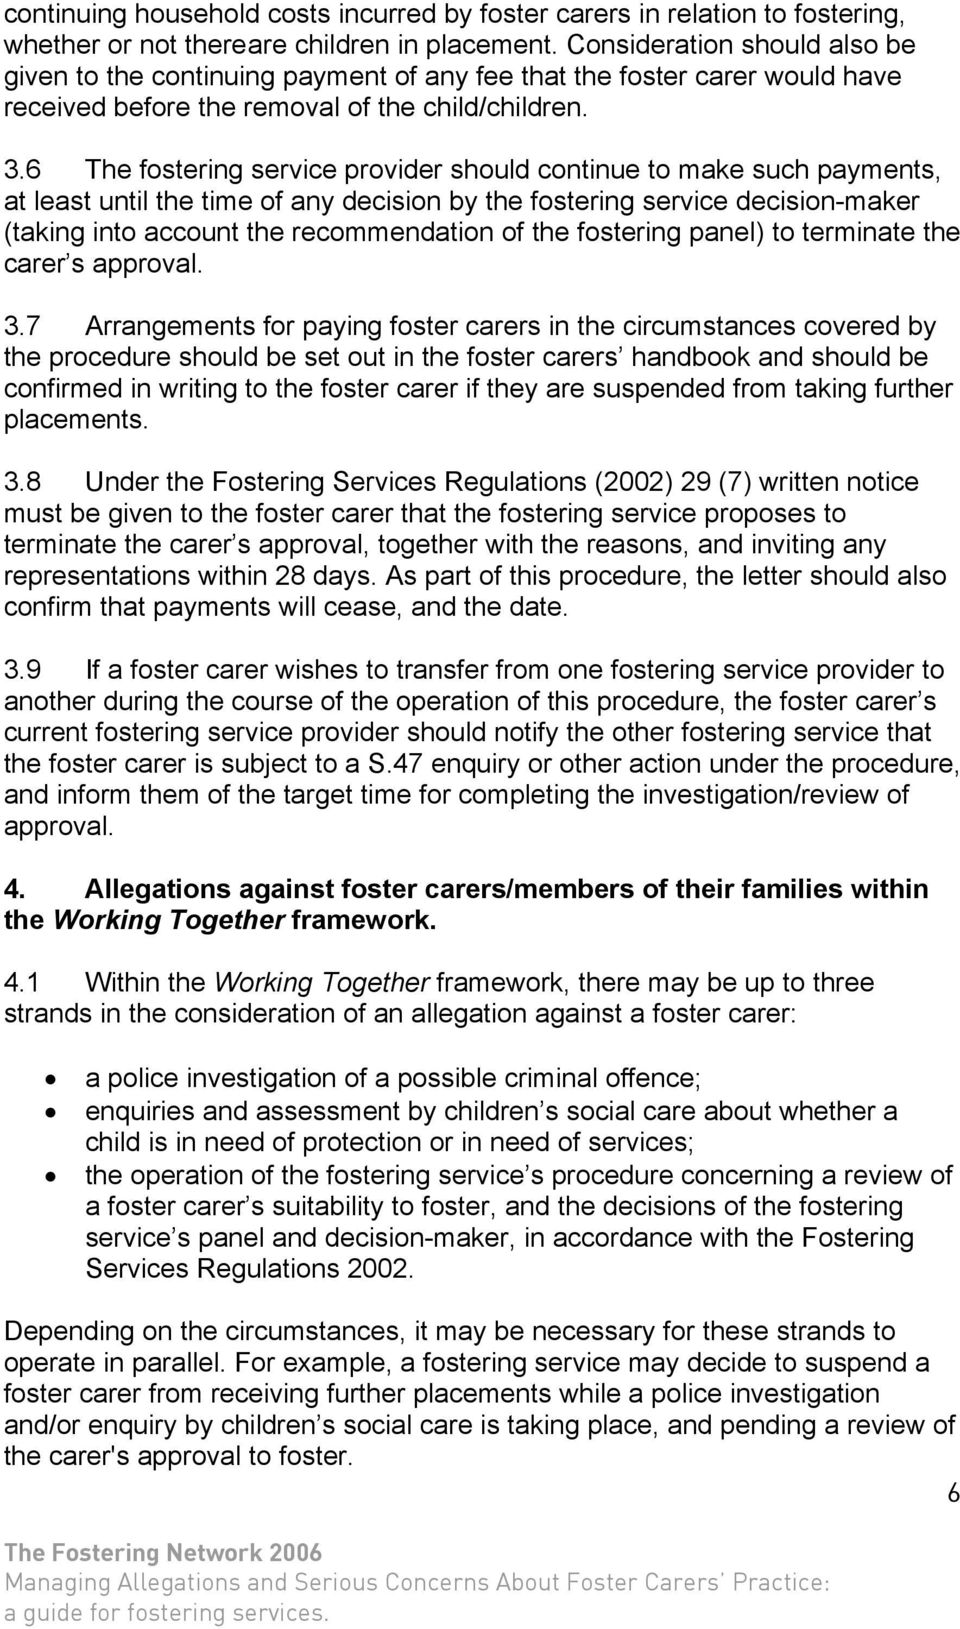 6 The fostering service provider should continue to make such payments, at least until the time of any decision by the fostering service decision-maker (taking into account the recommendation of the